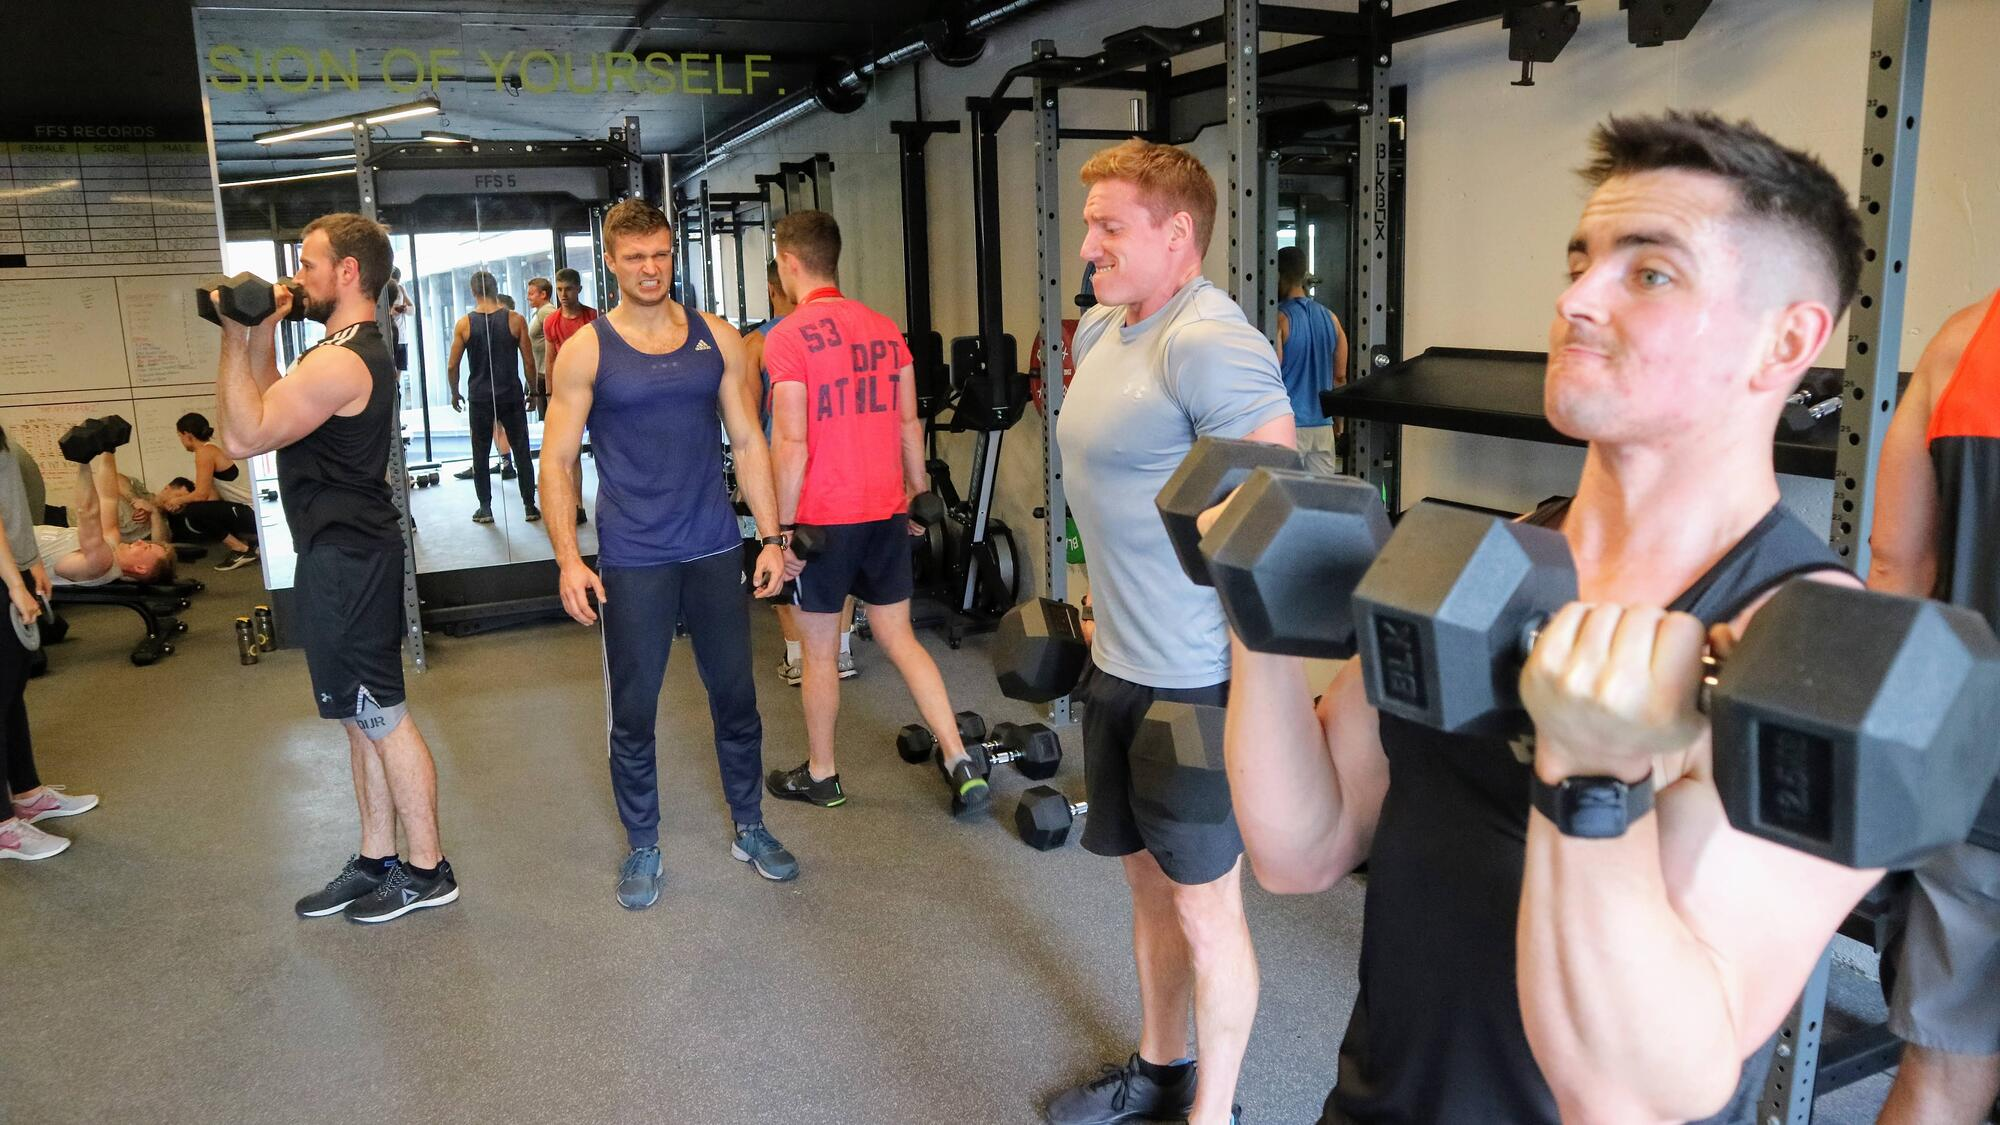 FFS Ivy Exchange strength and conditioning dublin